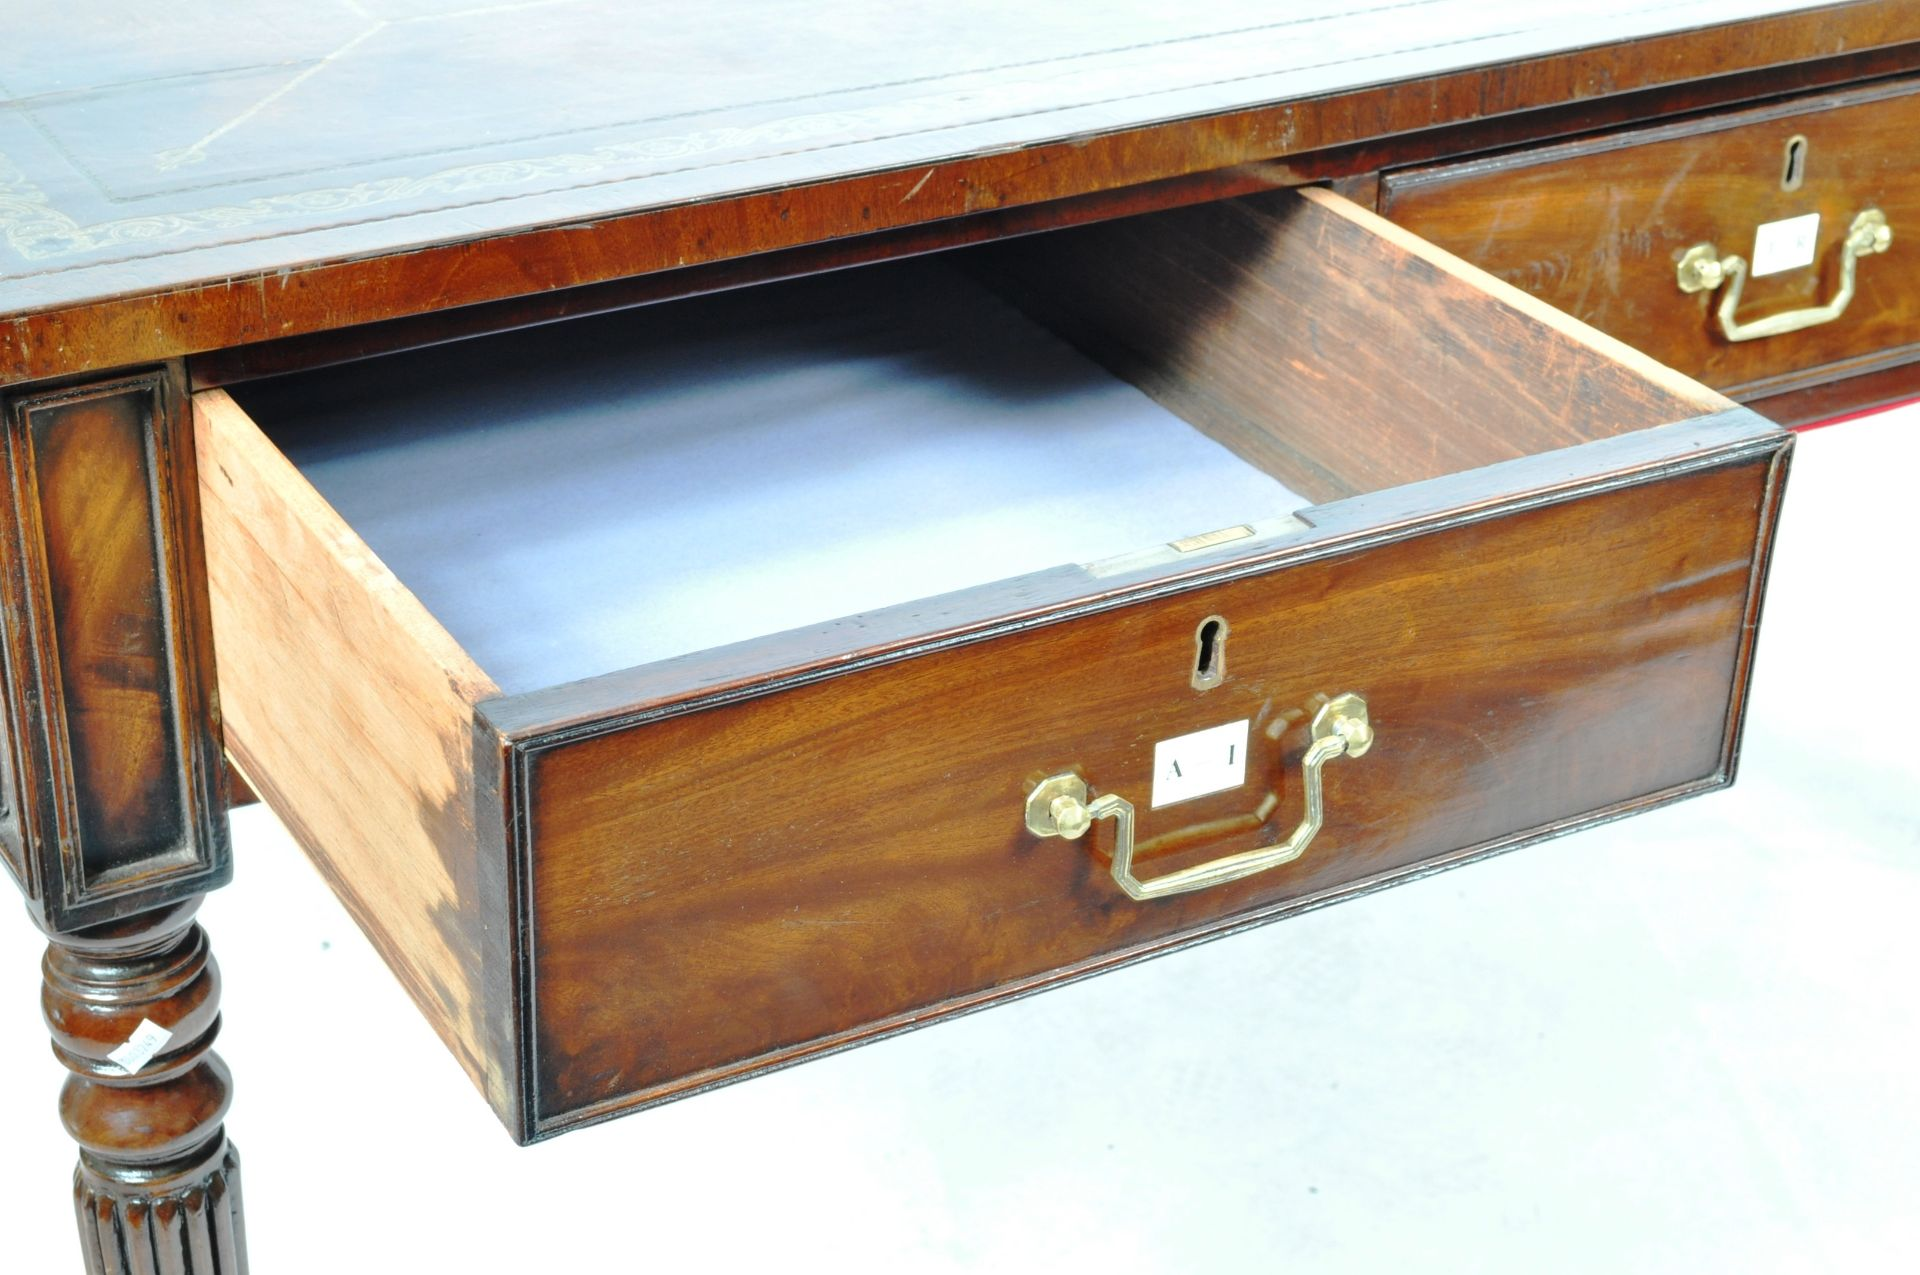 ANTIQUE 19TH CENTURY GILLOWS MANNER PARTNERS DESK LIBRARY TABLE - Image 5 of 9